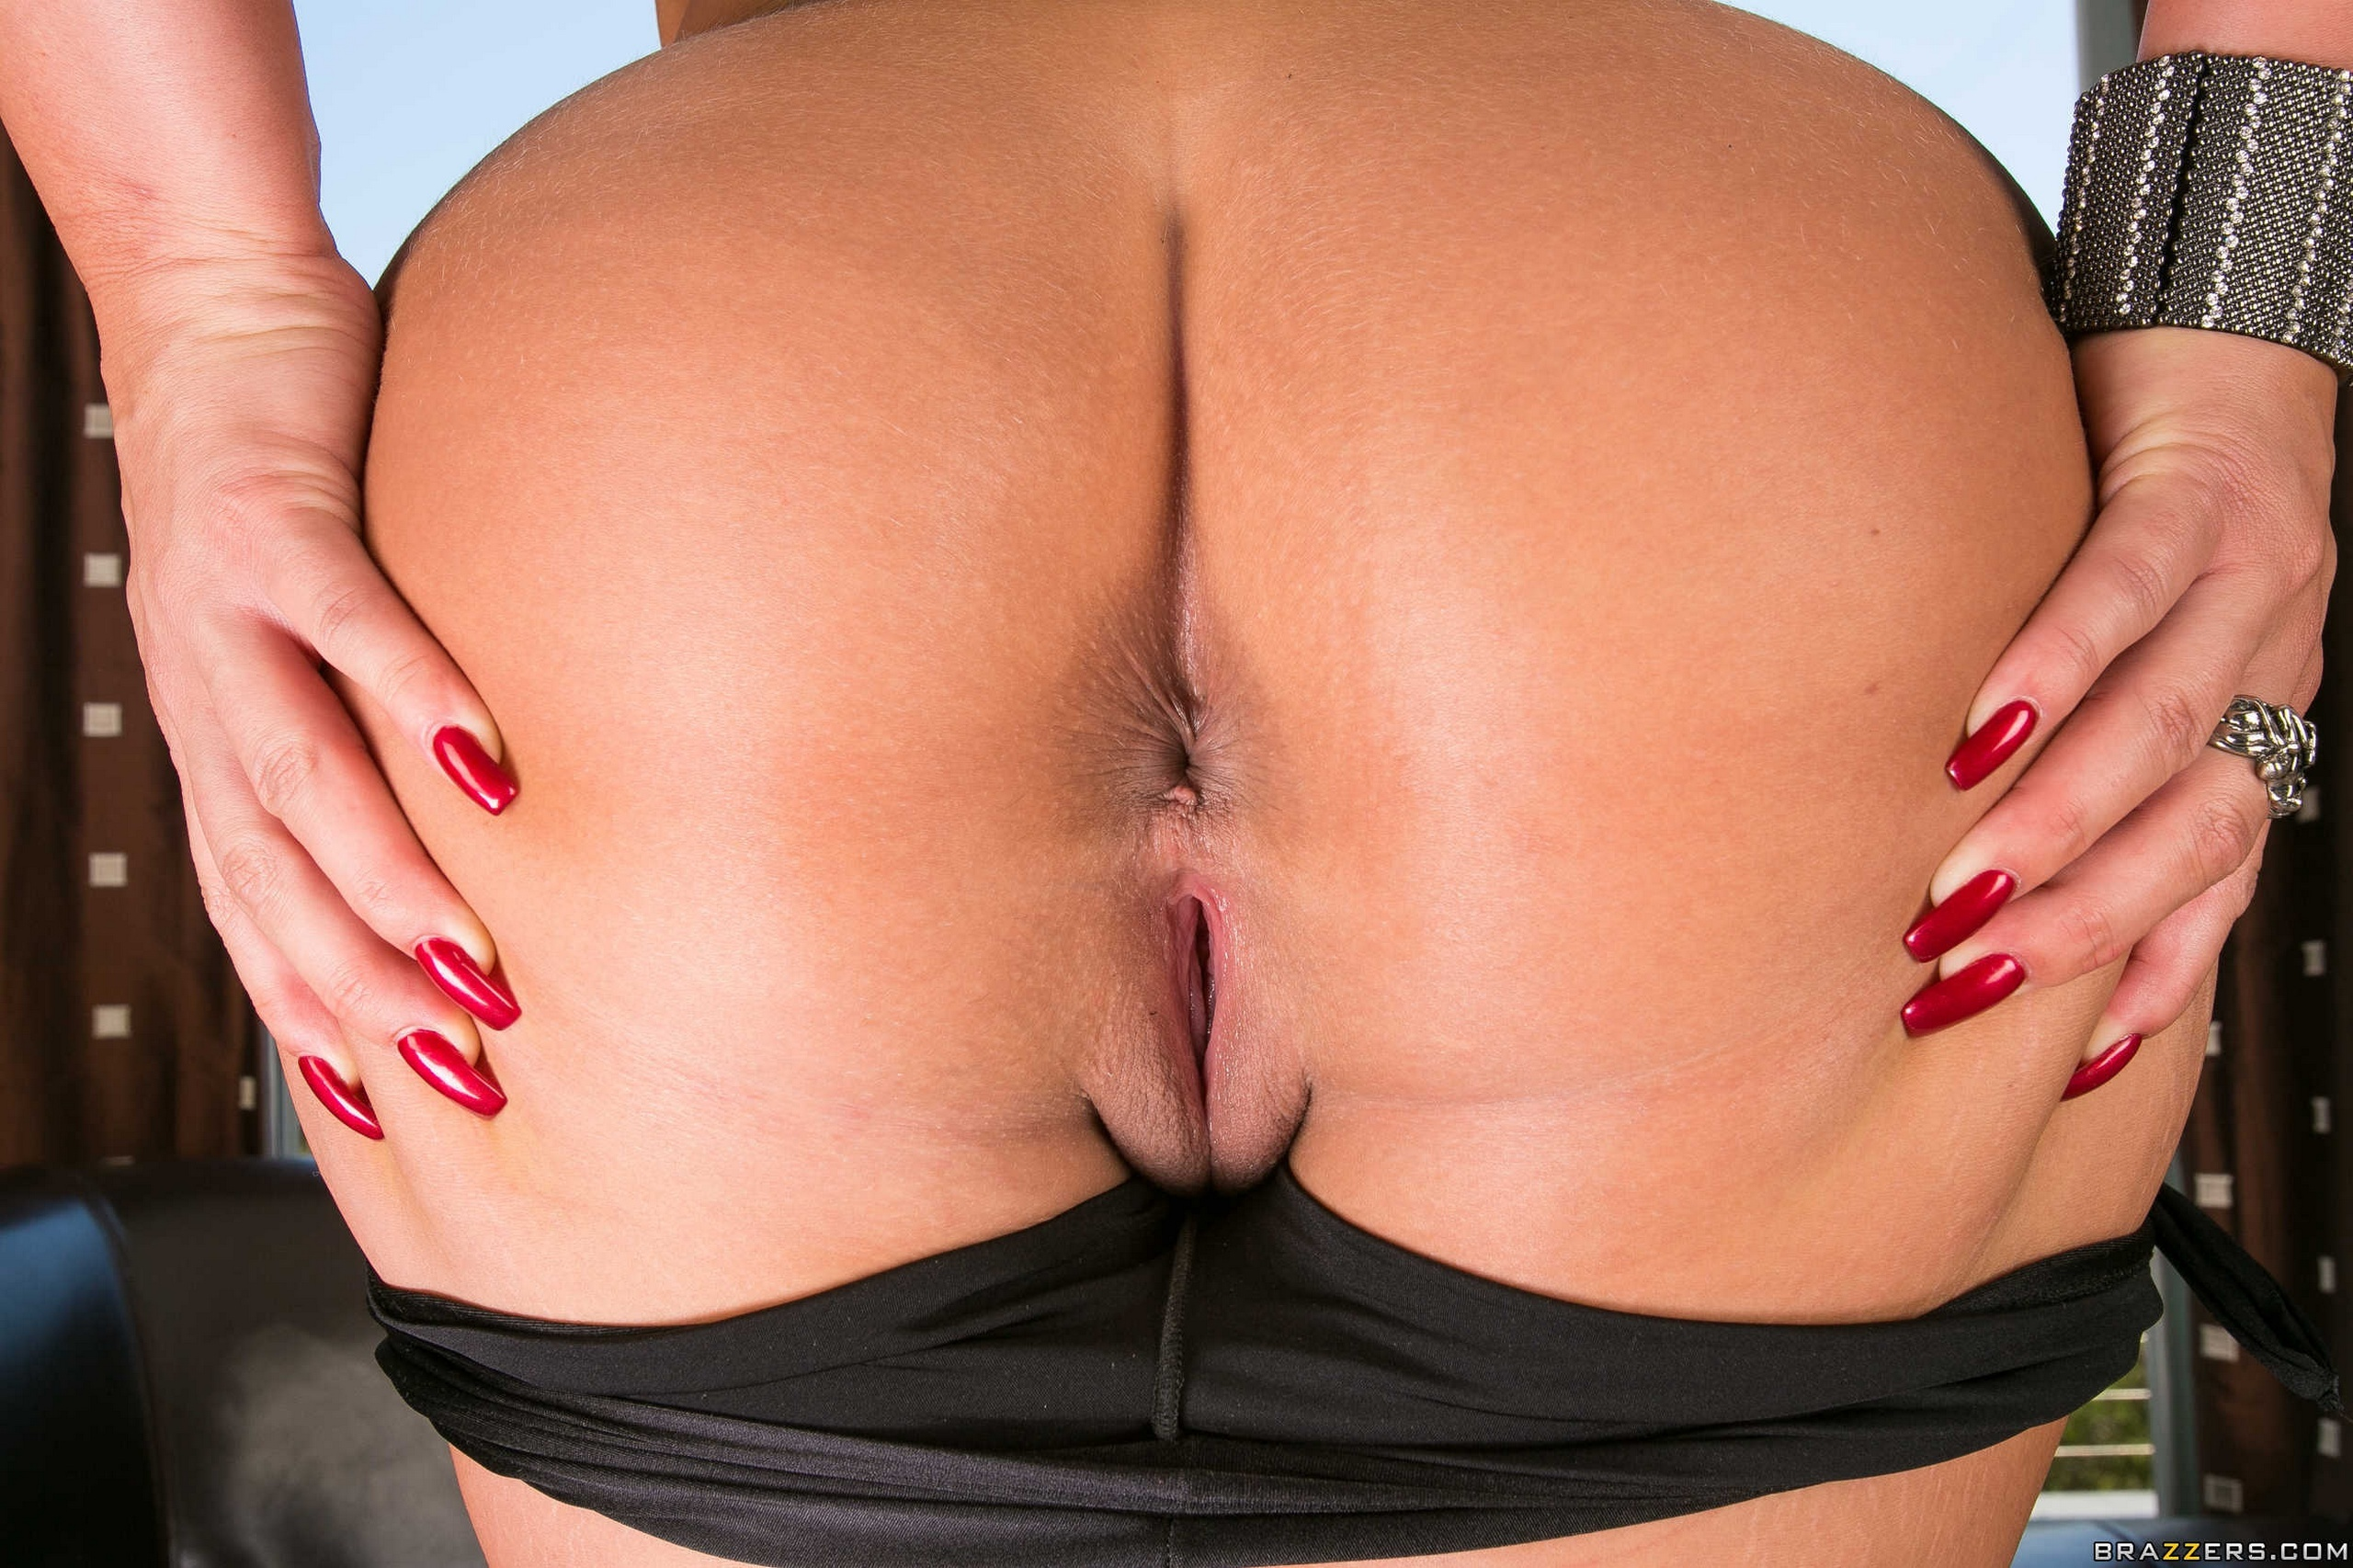 wallpaper phoenix marie, butt, big ass, pussy, hot, sexy, blonde